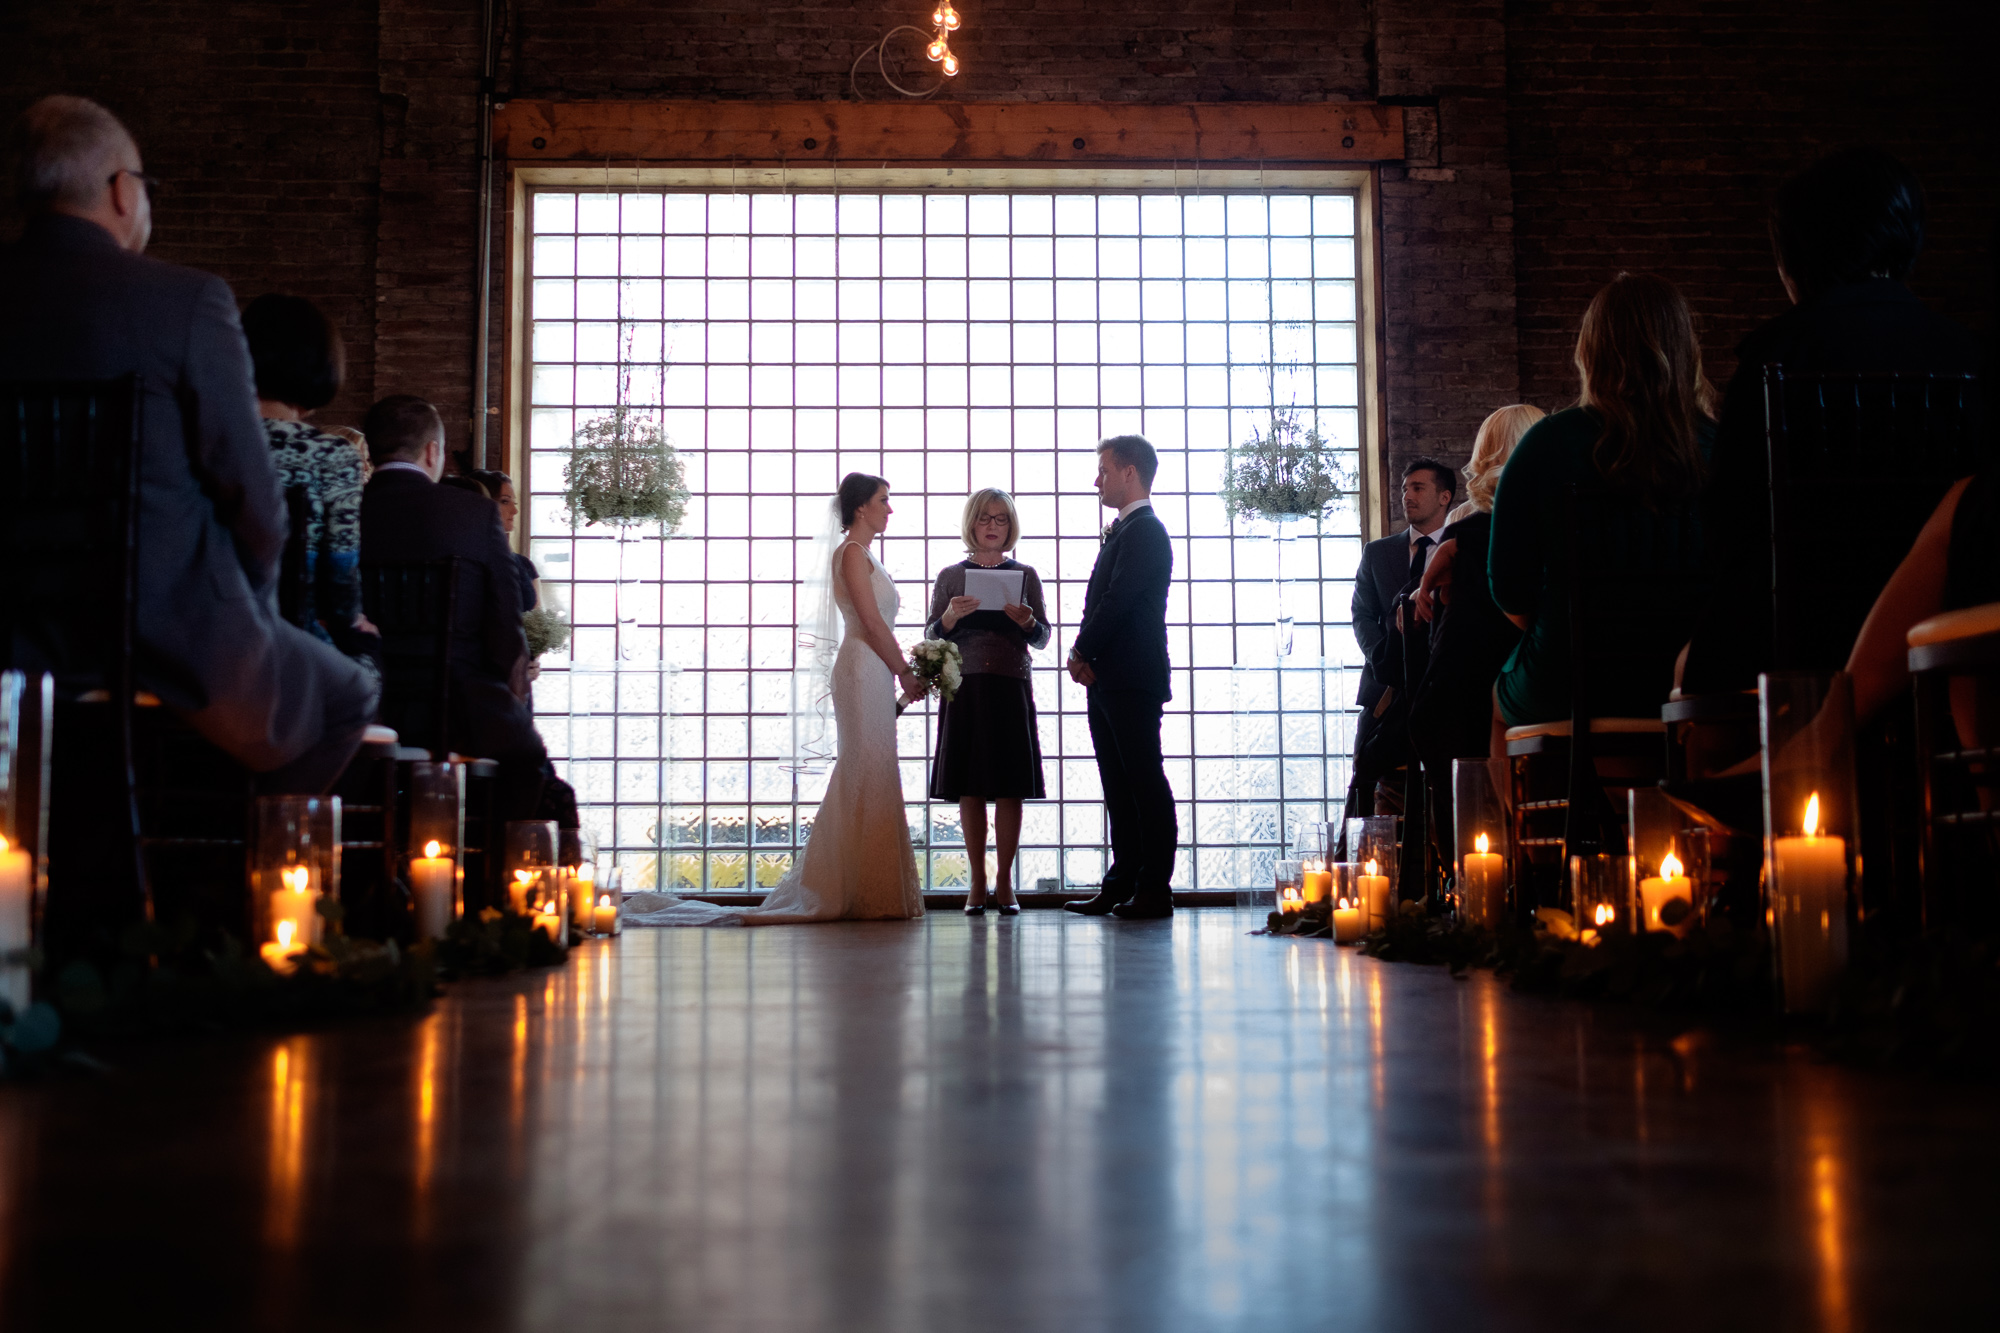 A photograph of the wedding ceremony from Emilie + John's wedding at 99 Sudbury in Toronto.